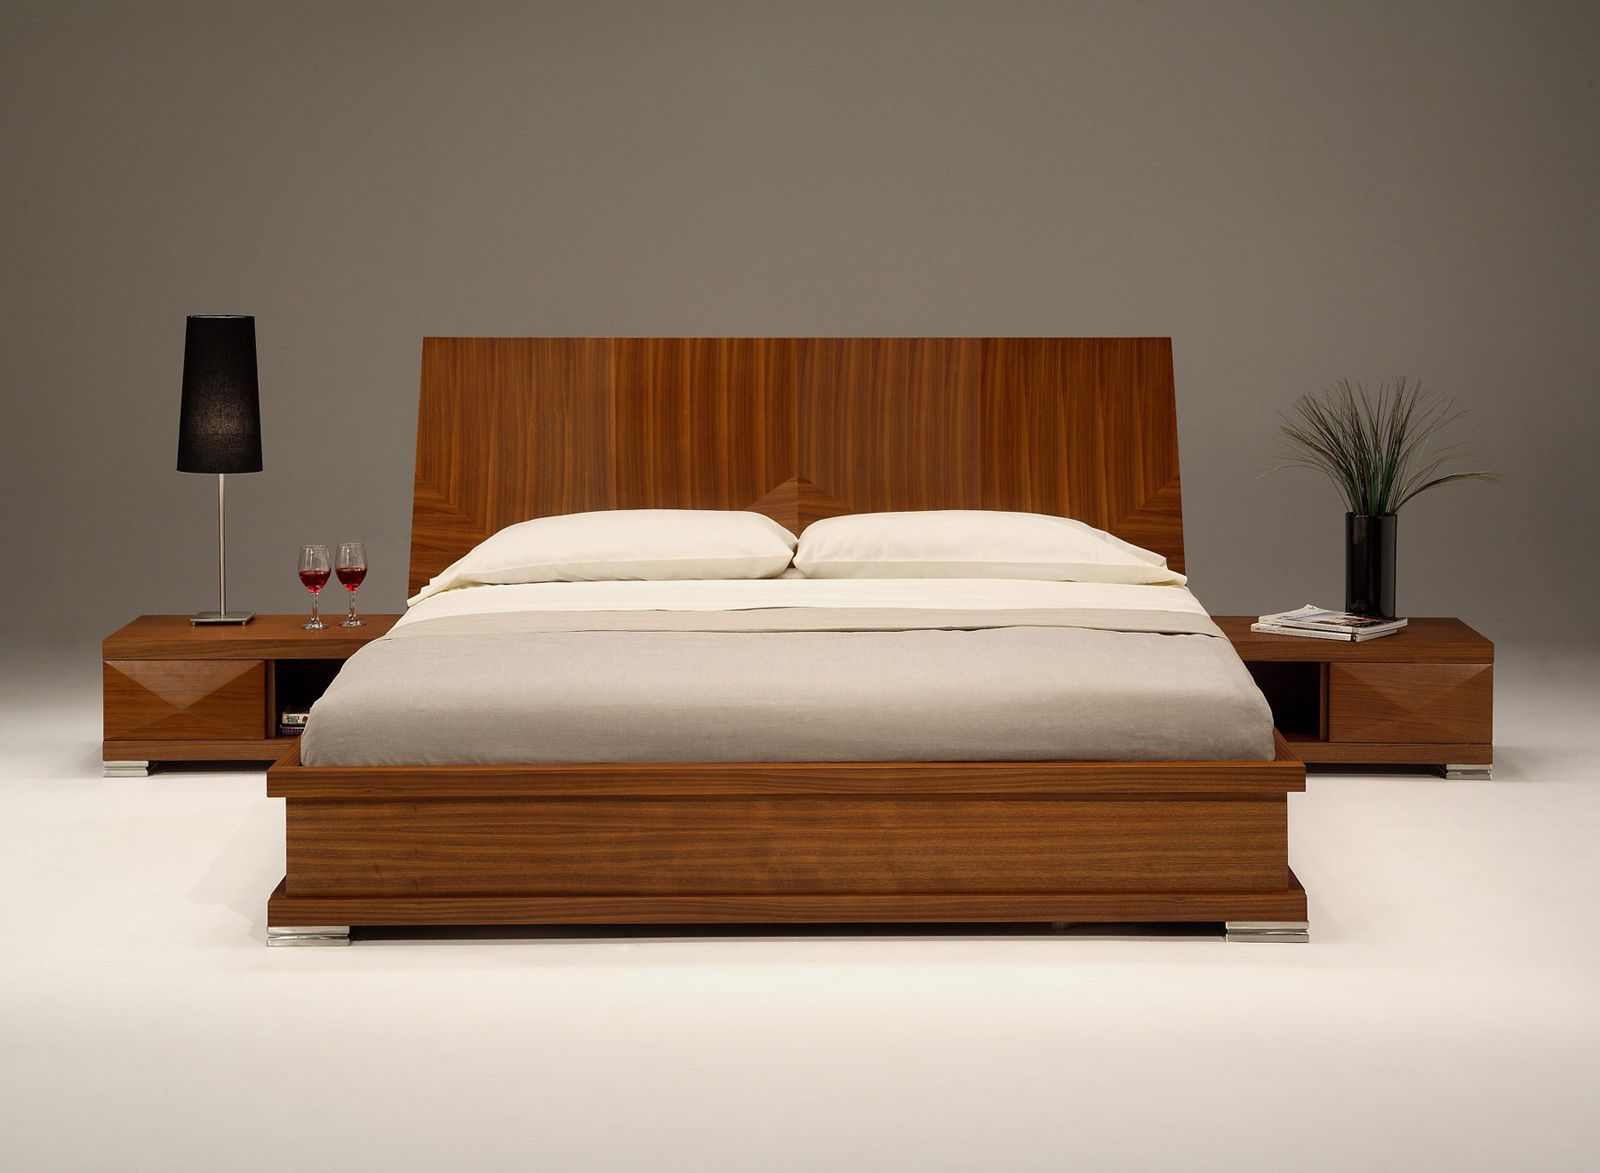 Bedroom design tips with modern bedroom furniture for Modern bedroom